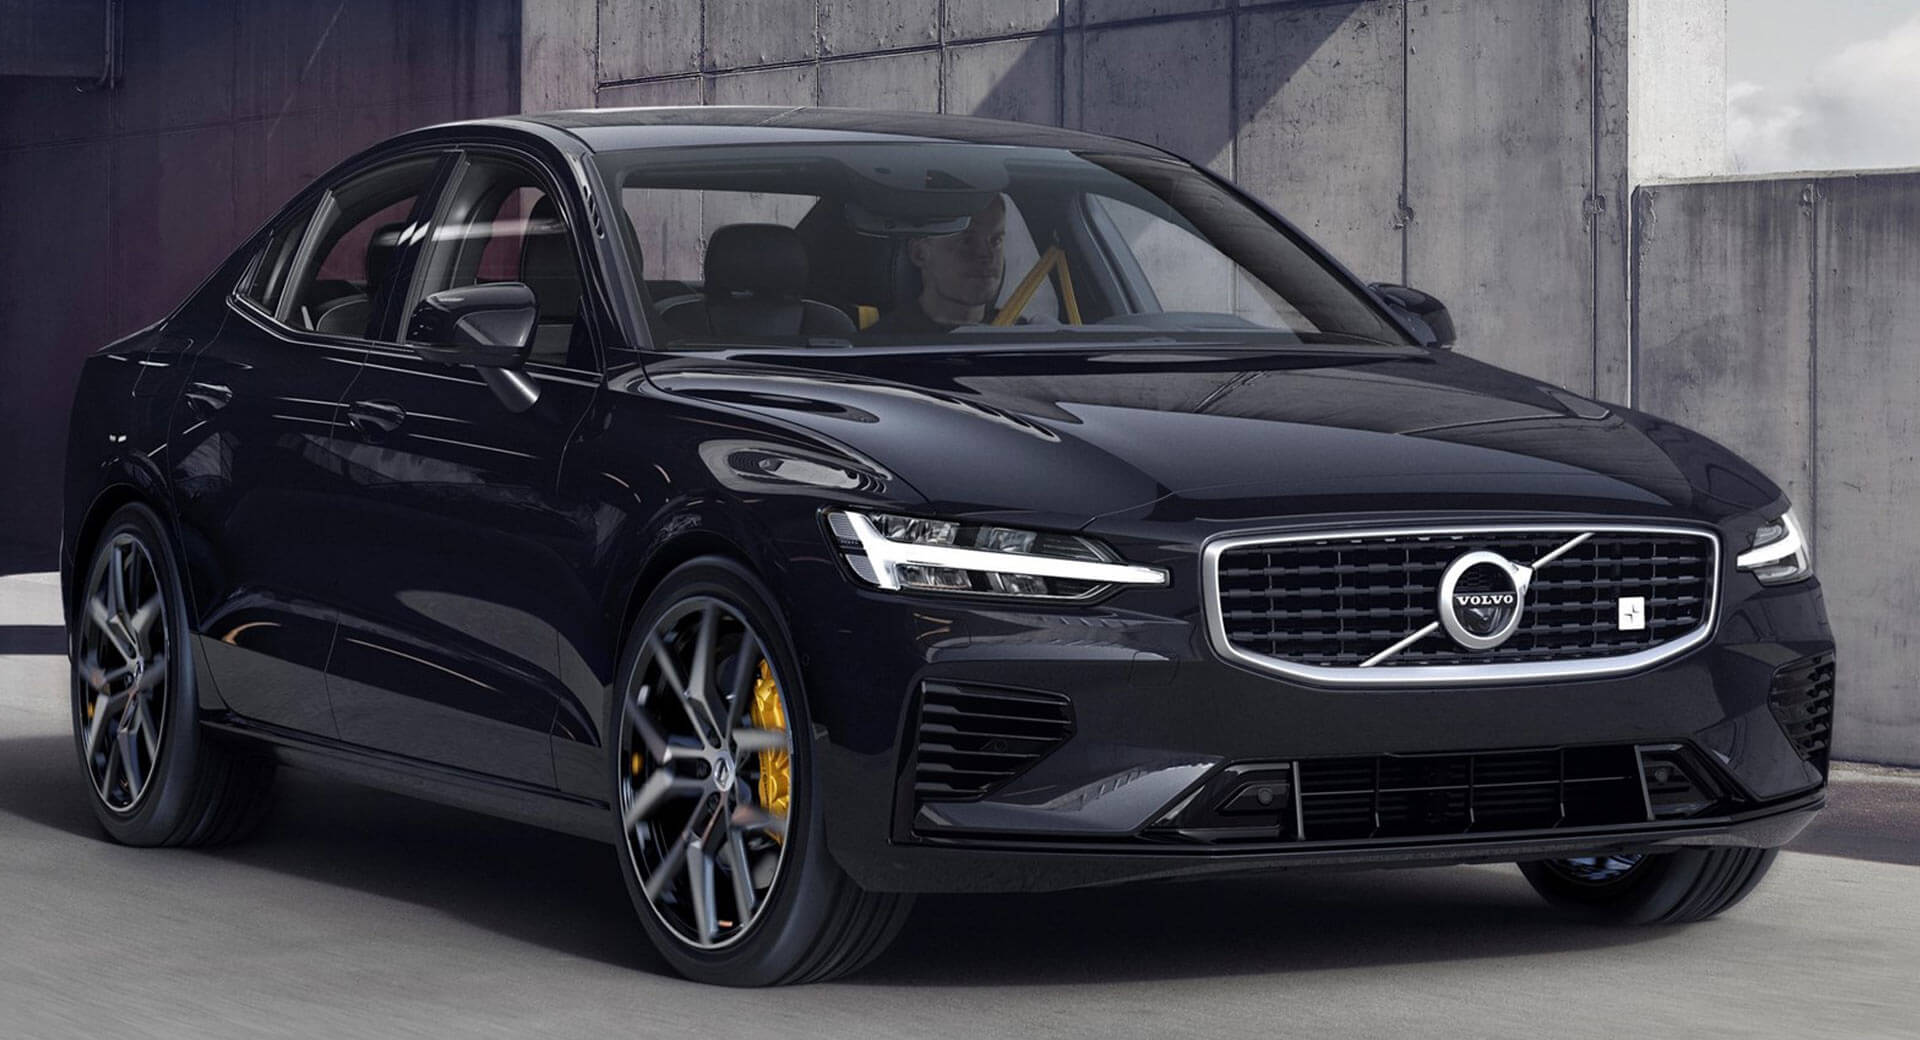 2019 volvo s60 priced from  35 800  subscription starts at  775  as configurator goes live